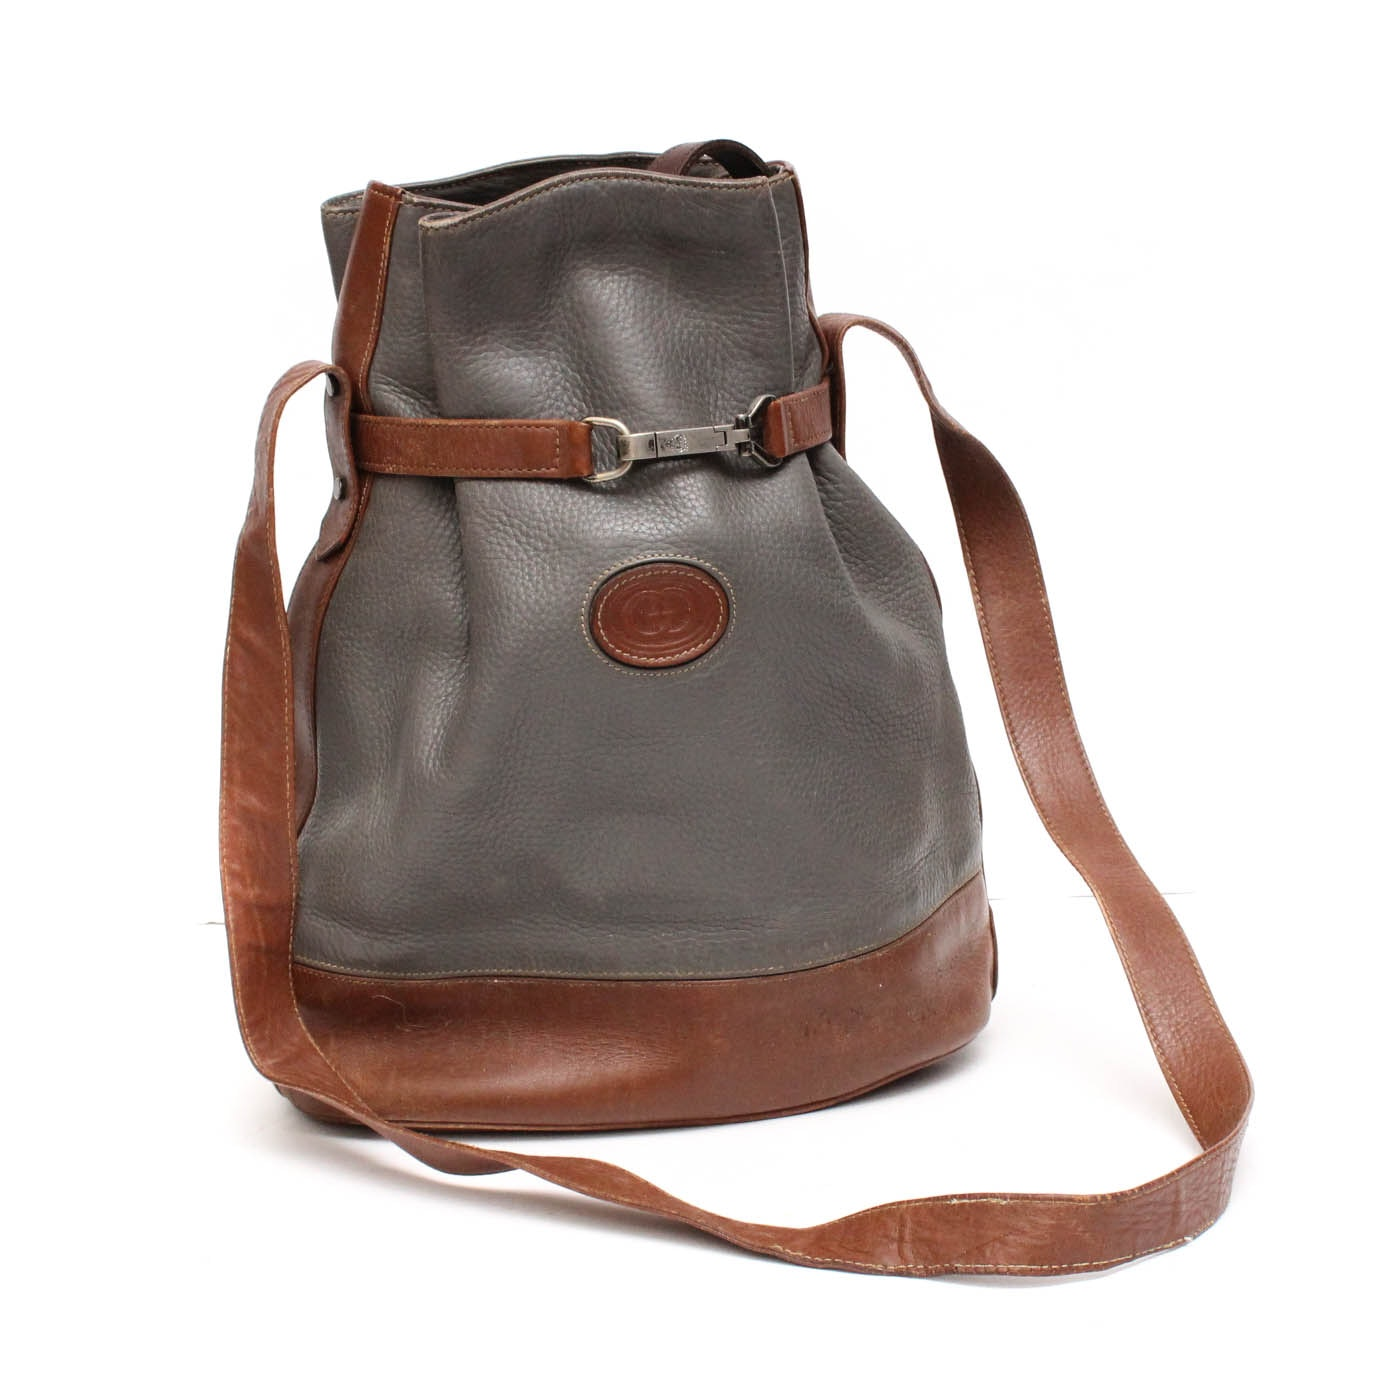 Vintage Gucci Pebble Leather Bucket Bag Trimmed in Chestnut Brown Leather